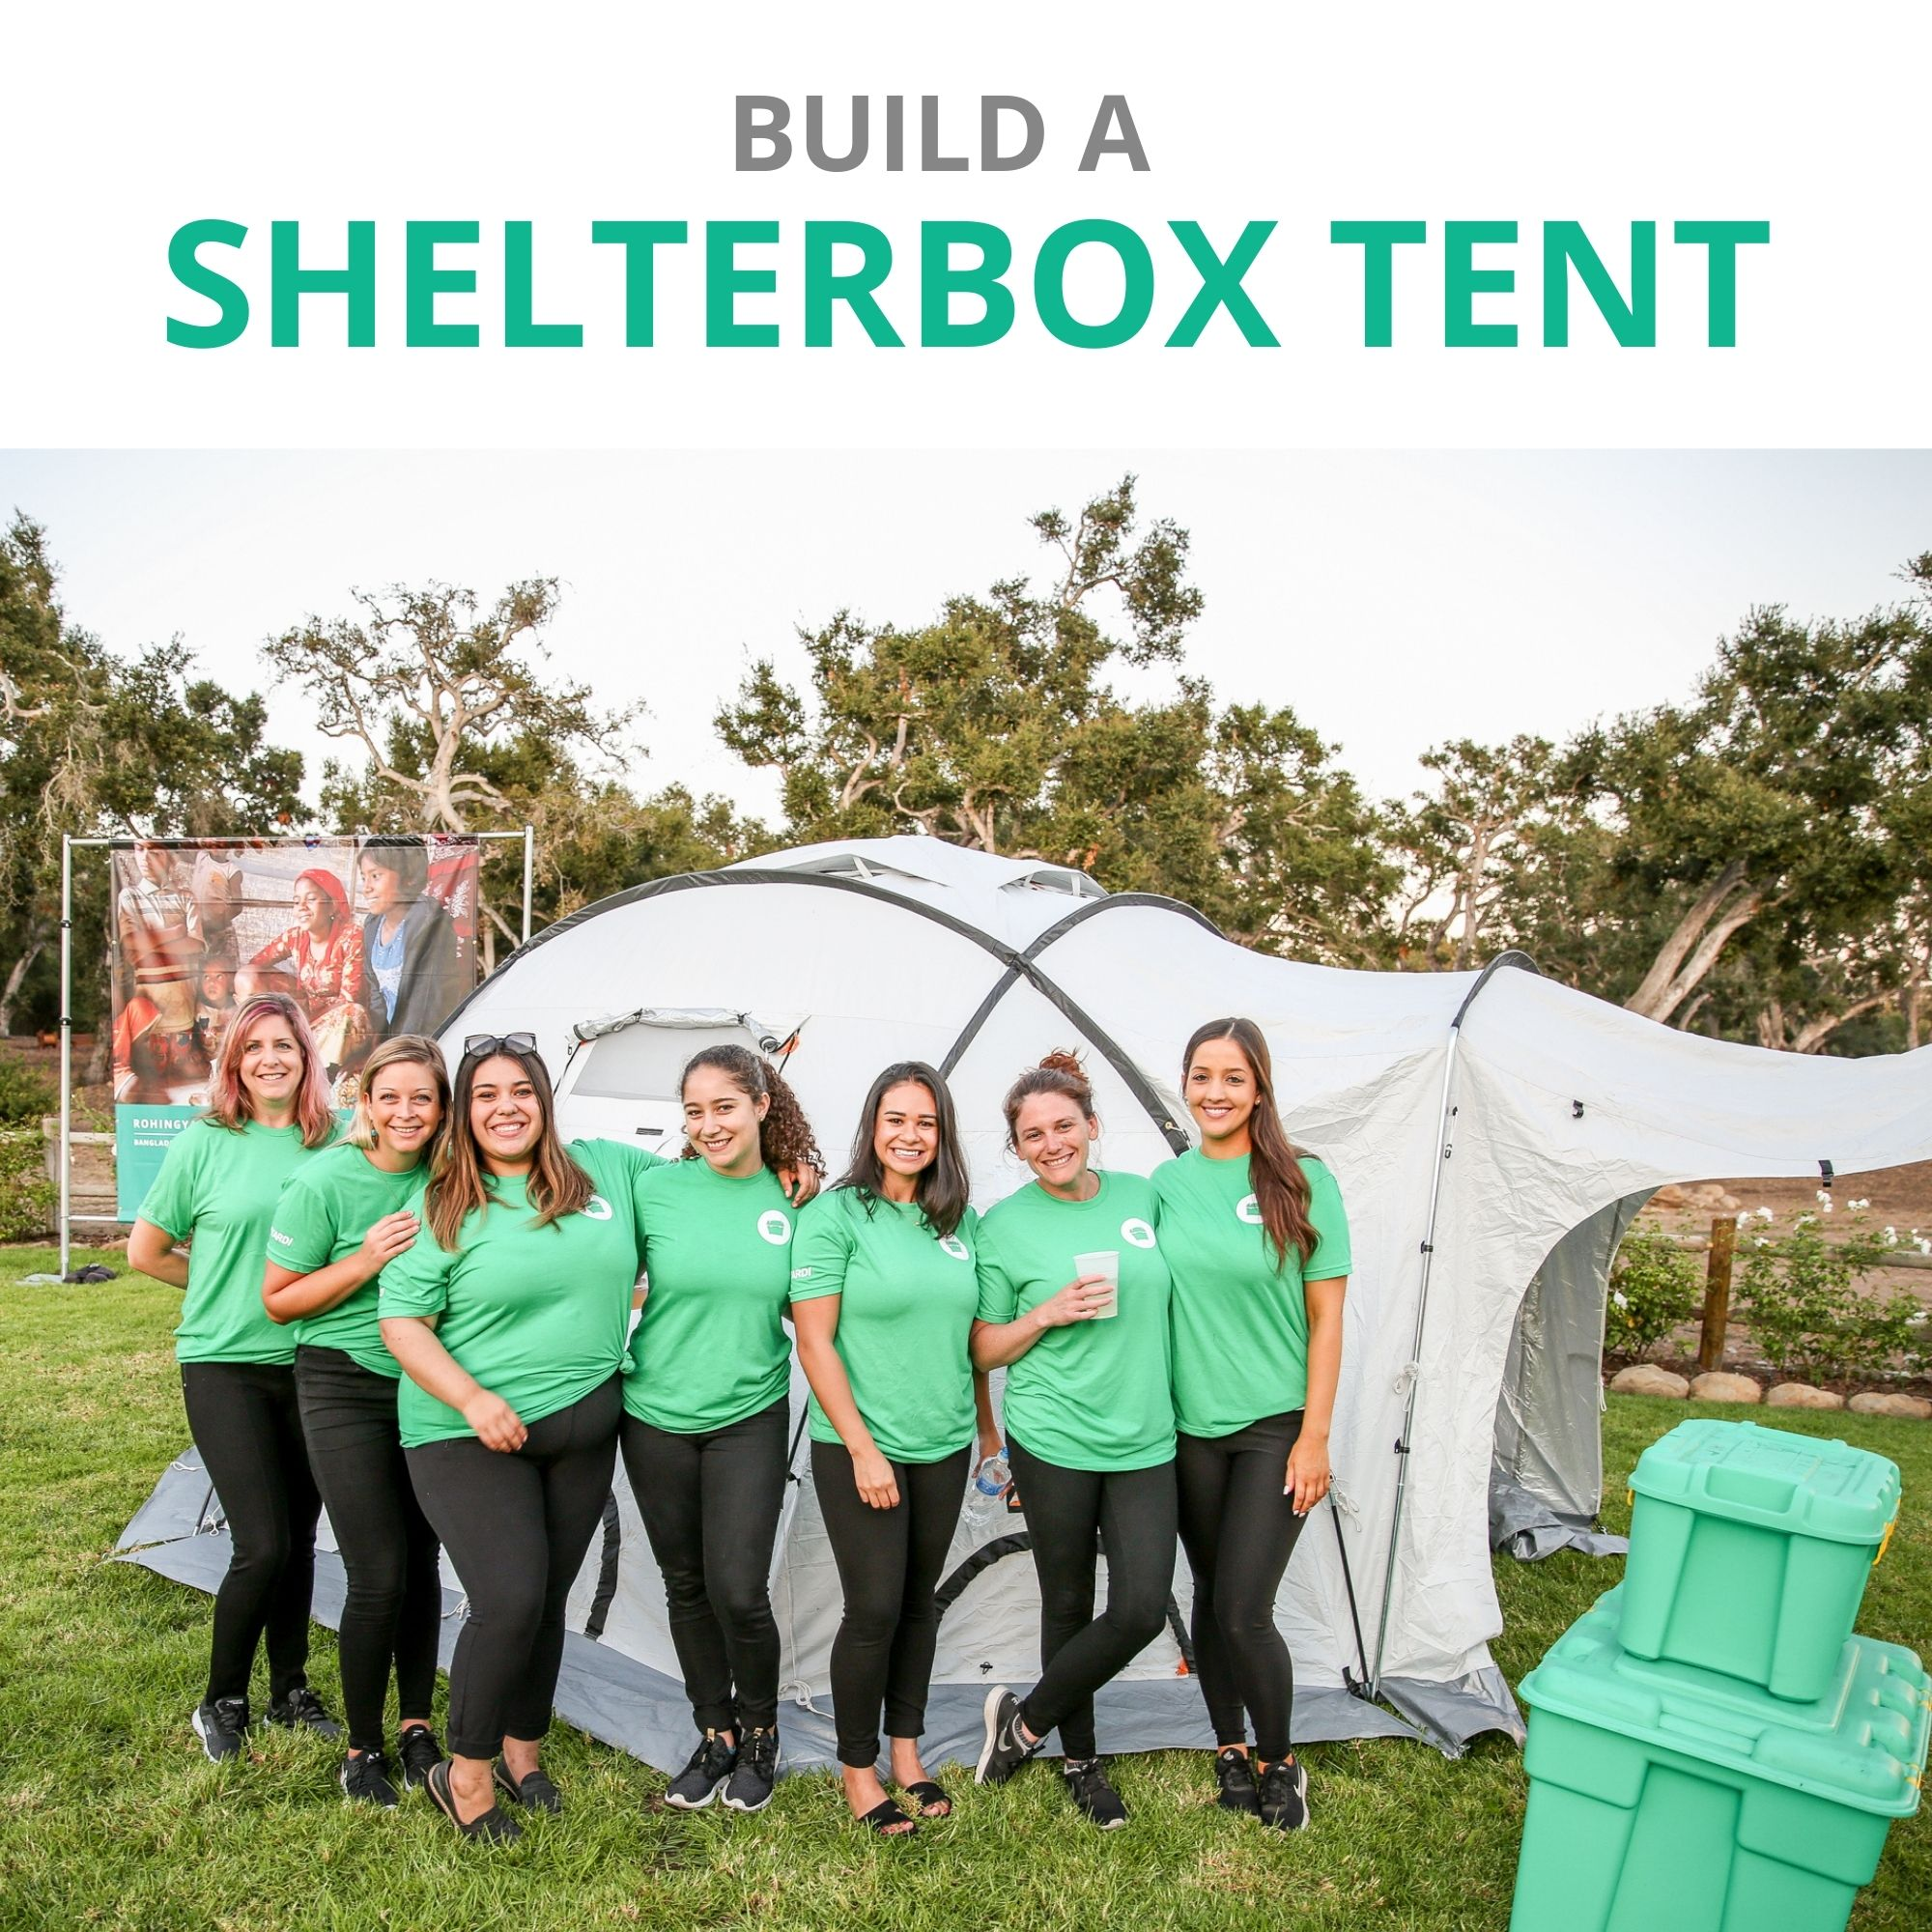 Build a ShelterBox Tent